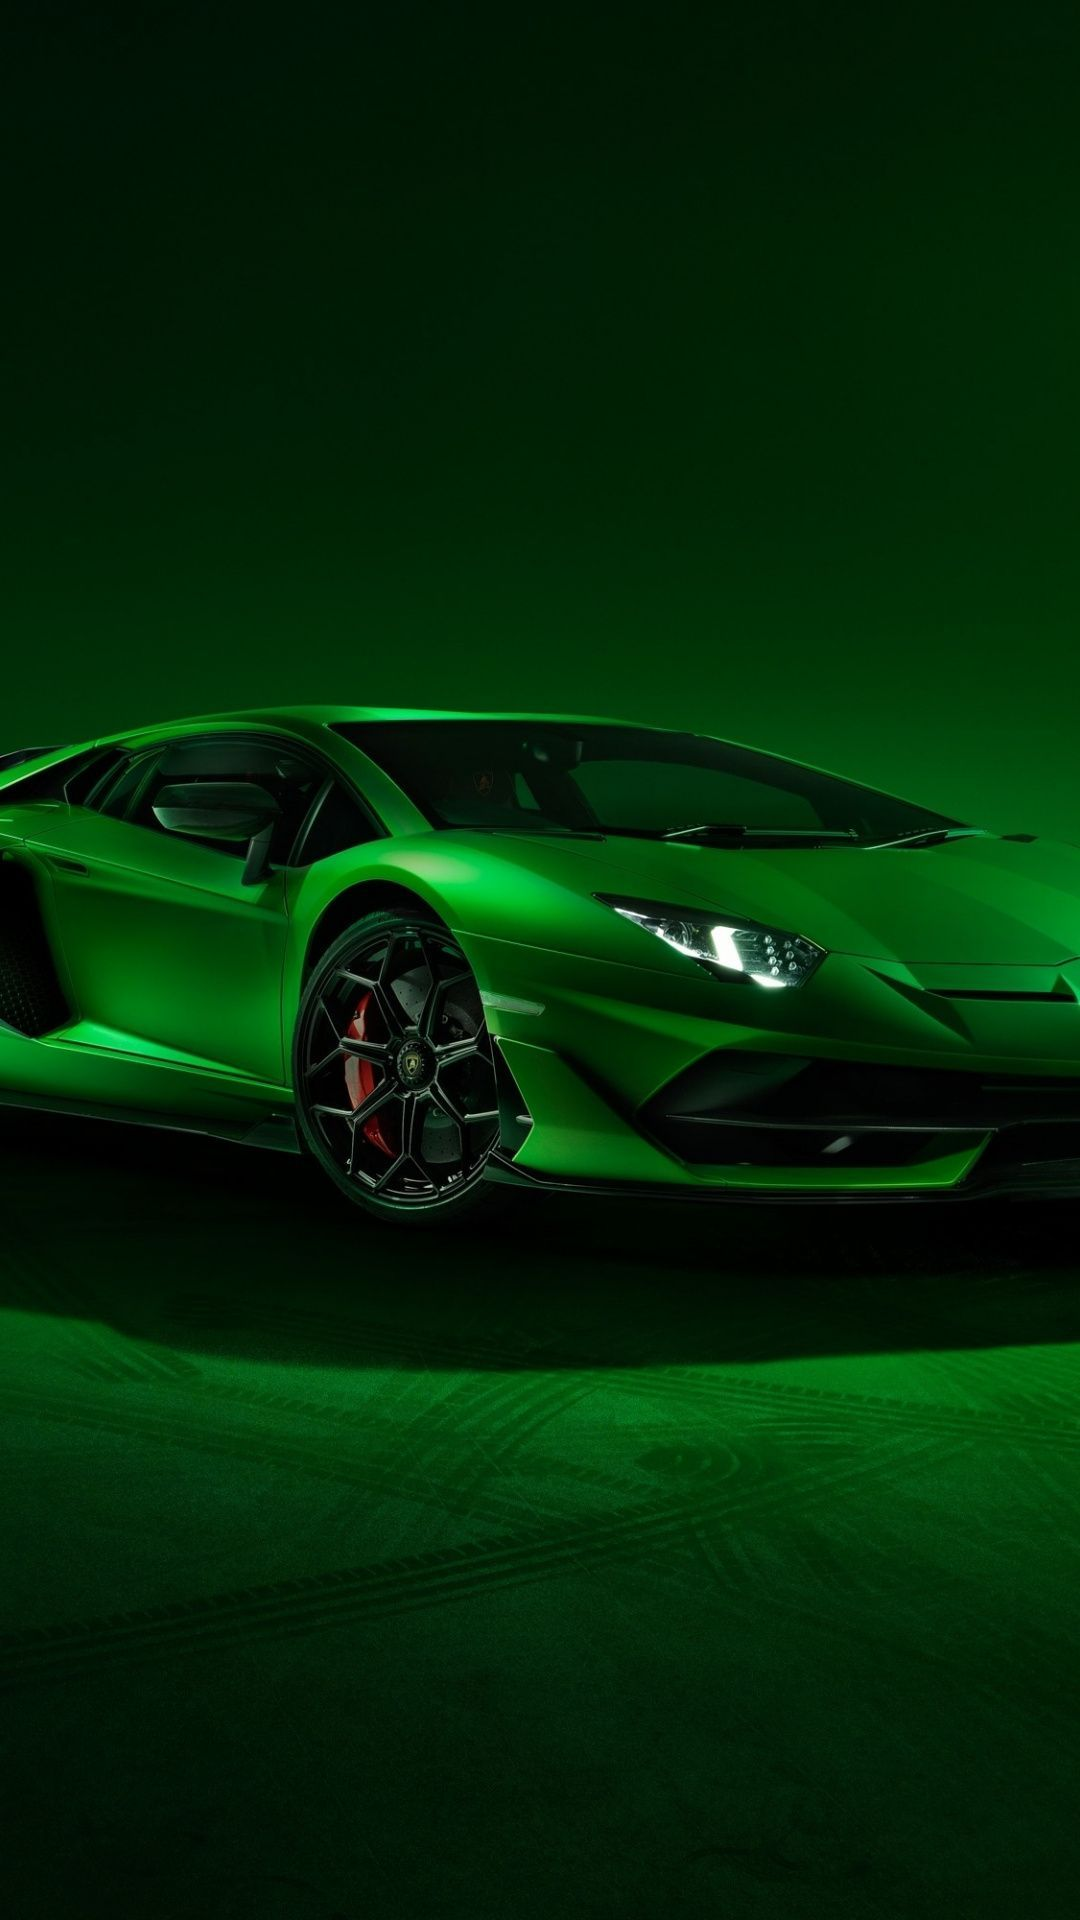 Lamborghini In 2020 Sports Car Green Lamborghini Super Luxury Cars